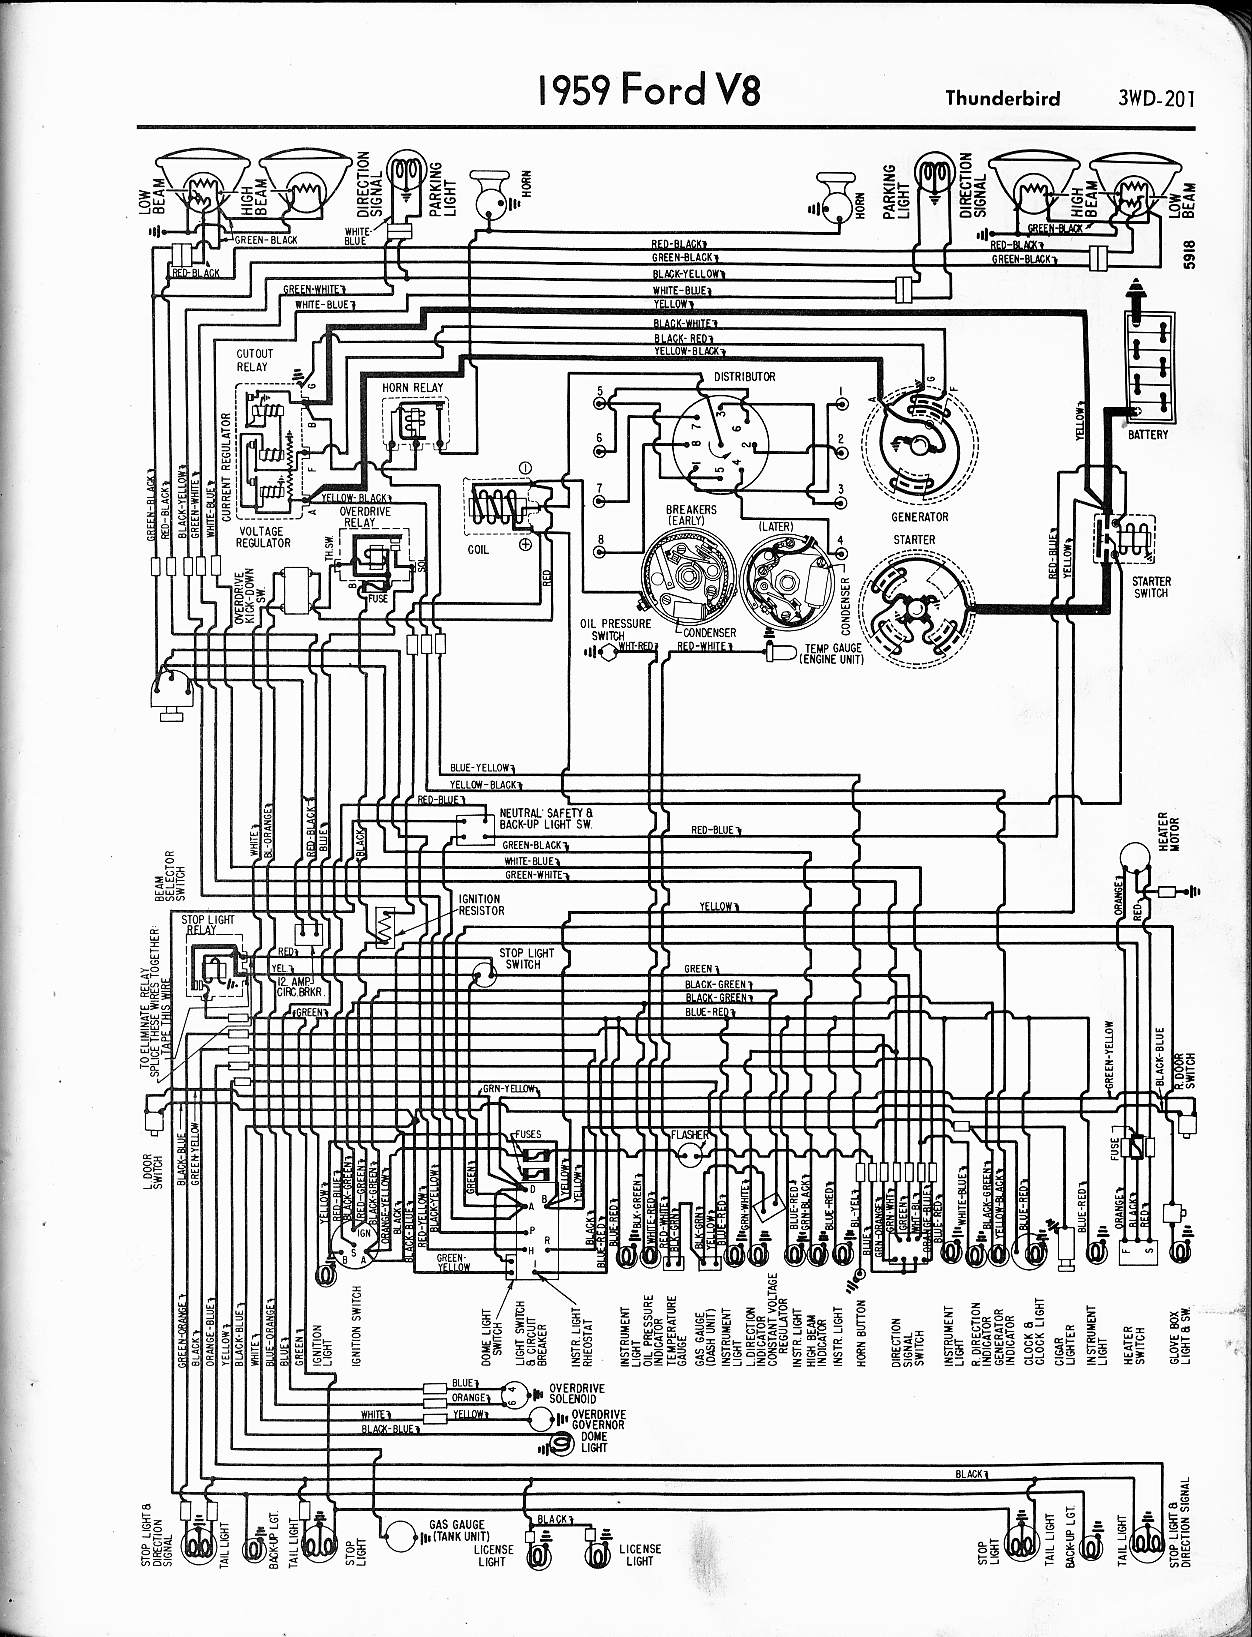 1970 ford 302 engine parts diagram electrical wiring diagrams \u2022 ford 302 exhaust manifold 68 ford 302 engine diagram free download enthusiast wiring diagrams u2022 rh rasalibre co 1982 ford f100 carburetor diagram 1971 ford truck distributor